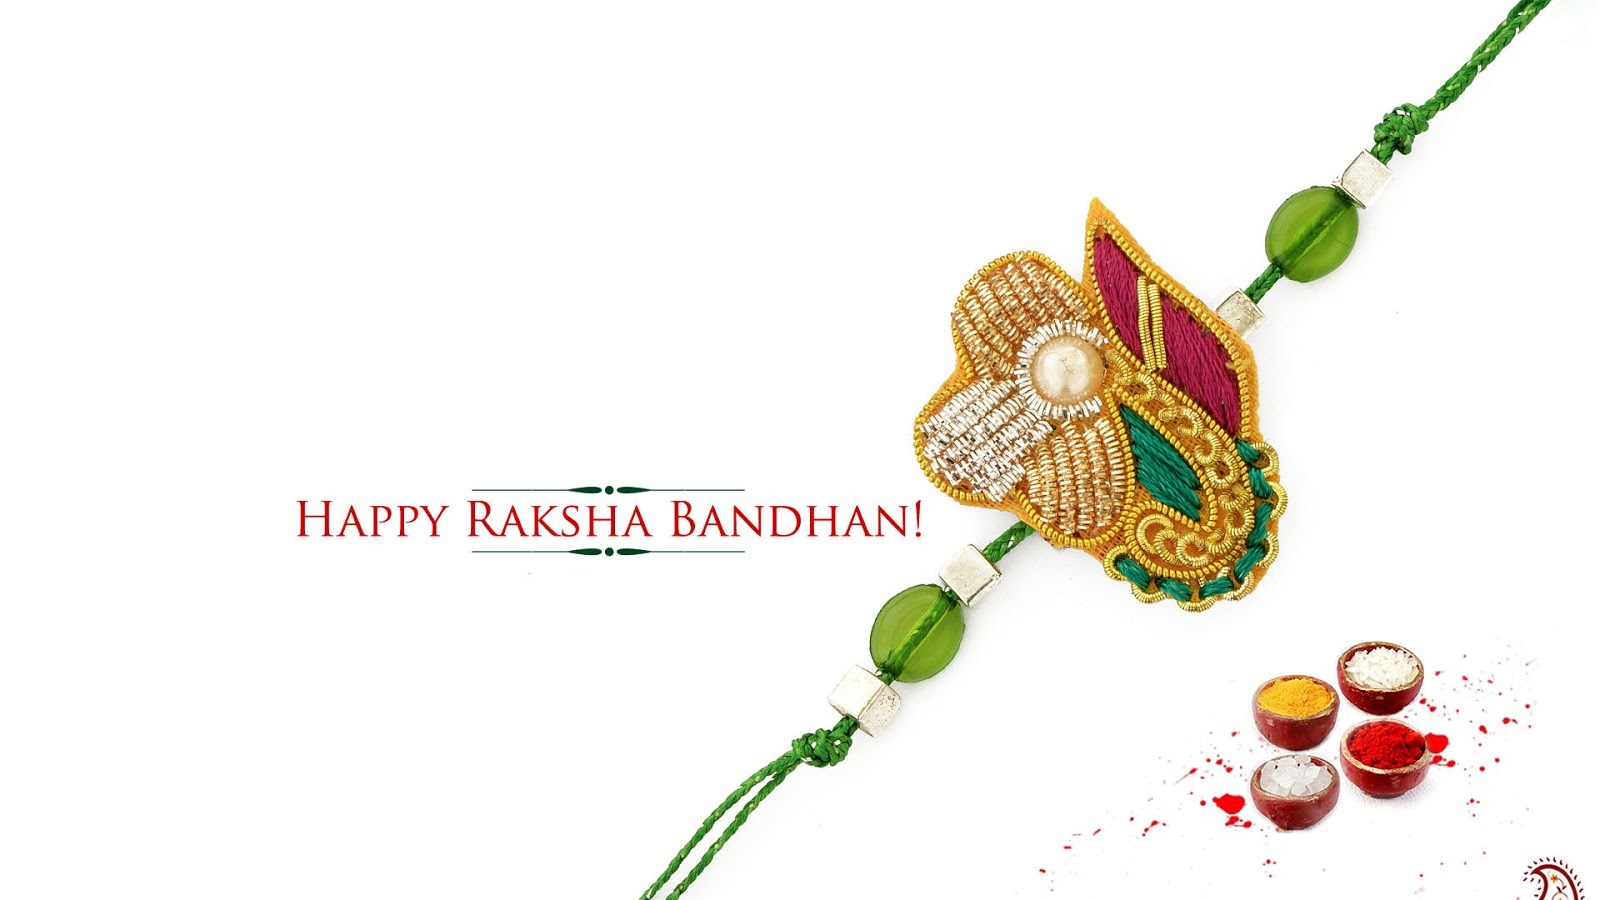 Happy Raksha Bandhan Images Free Download